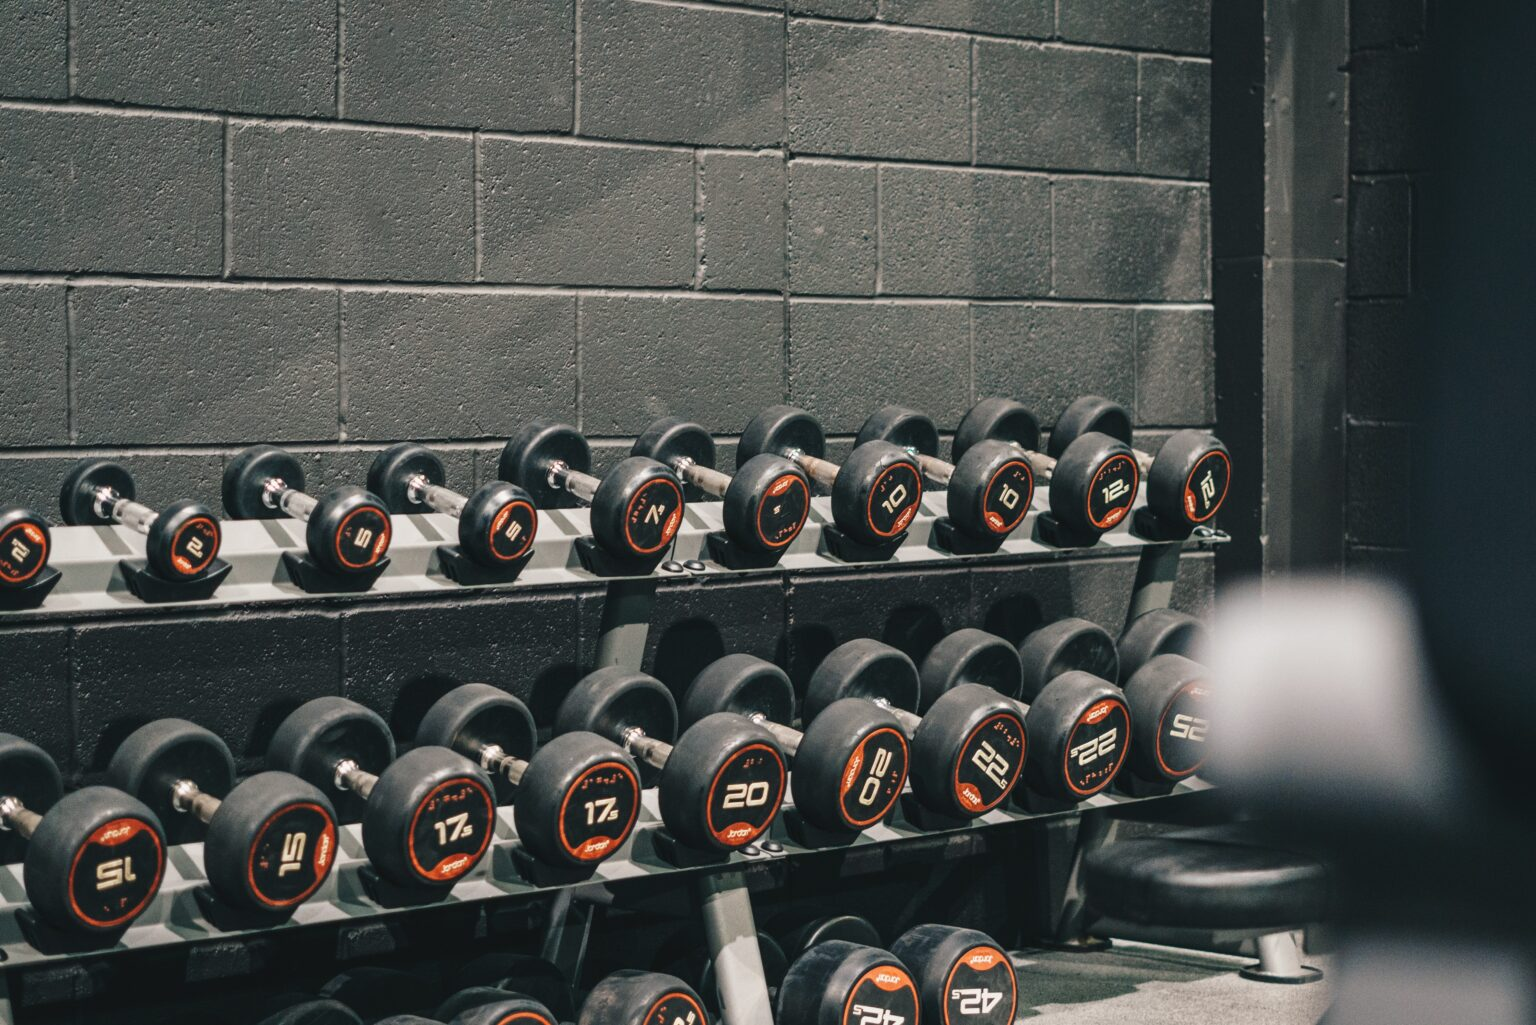 Dumbbell set in the gym